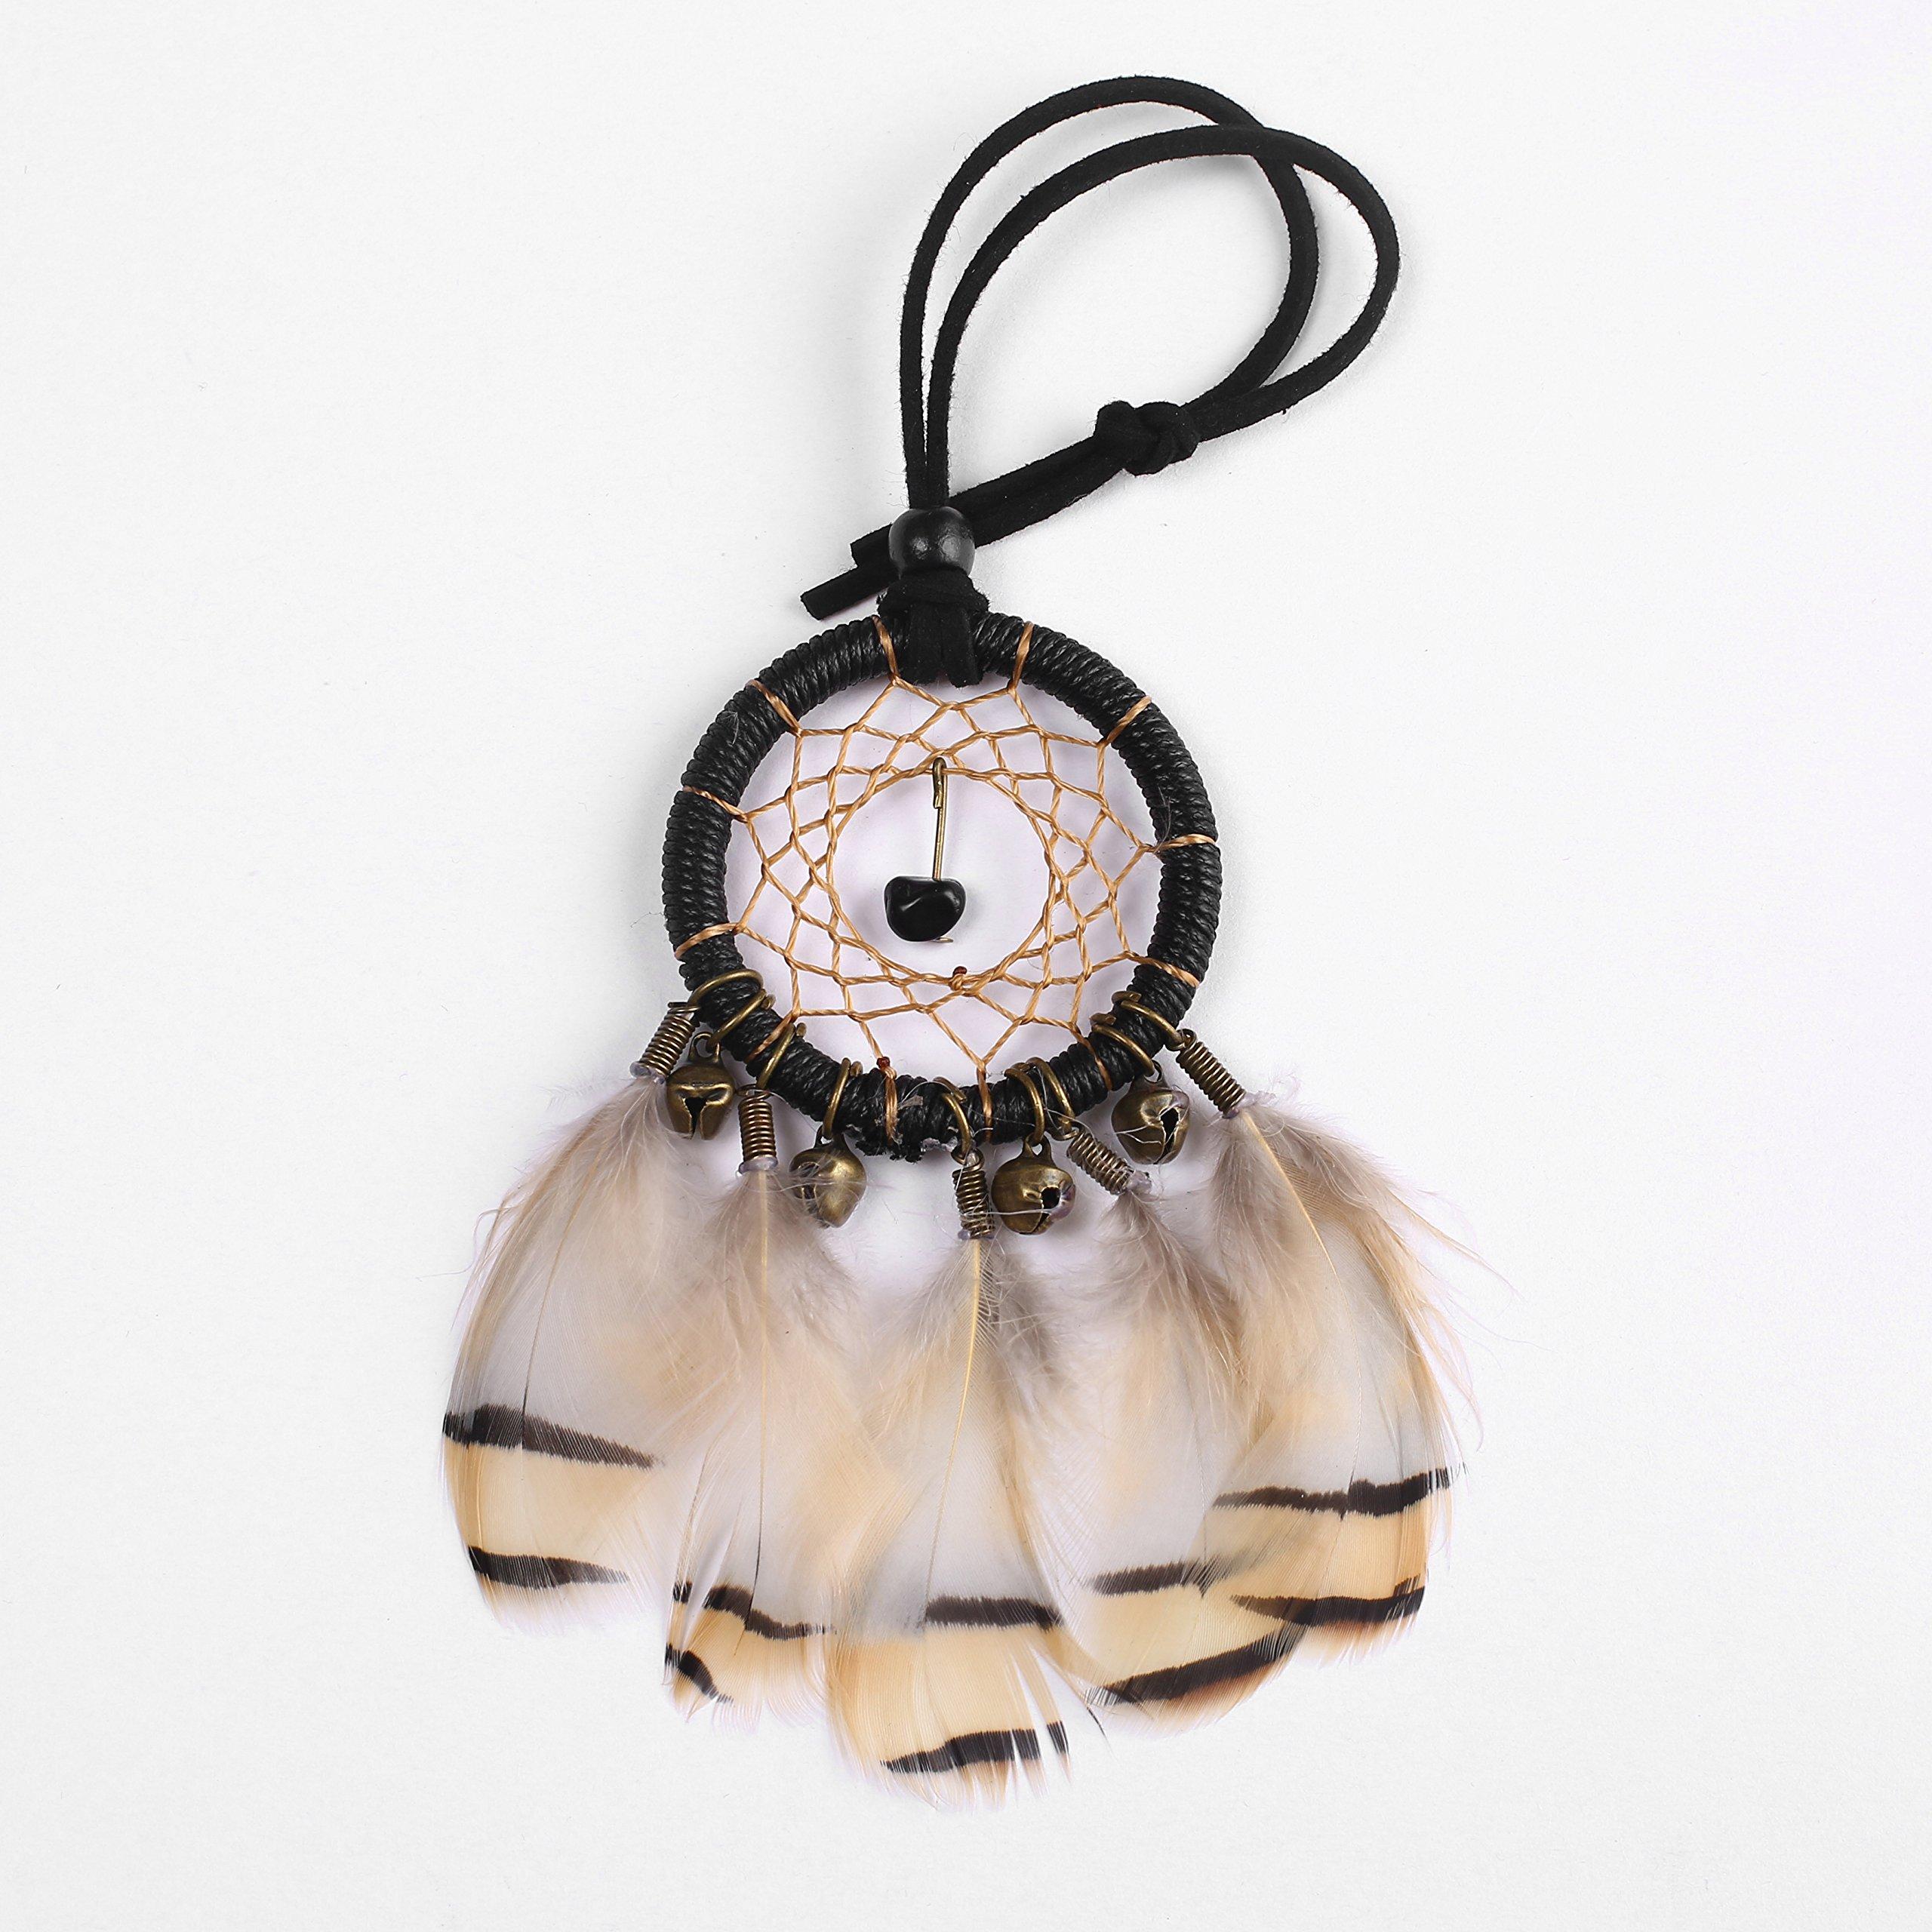 Gsha Mini Dream Catcher With Bells & Feathers, Handmade DreamCatcher for Baby Shower Boho Party Decorations 265cm